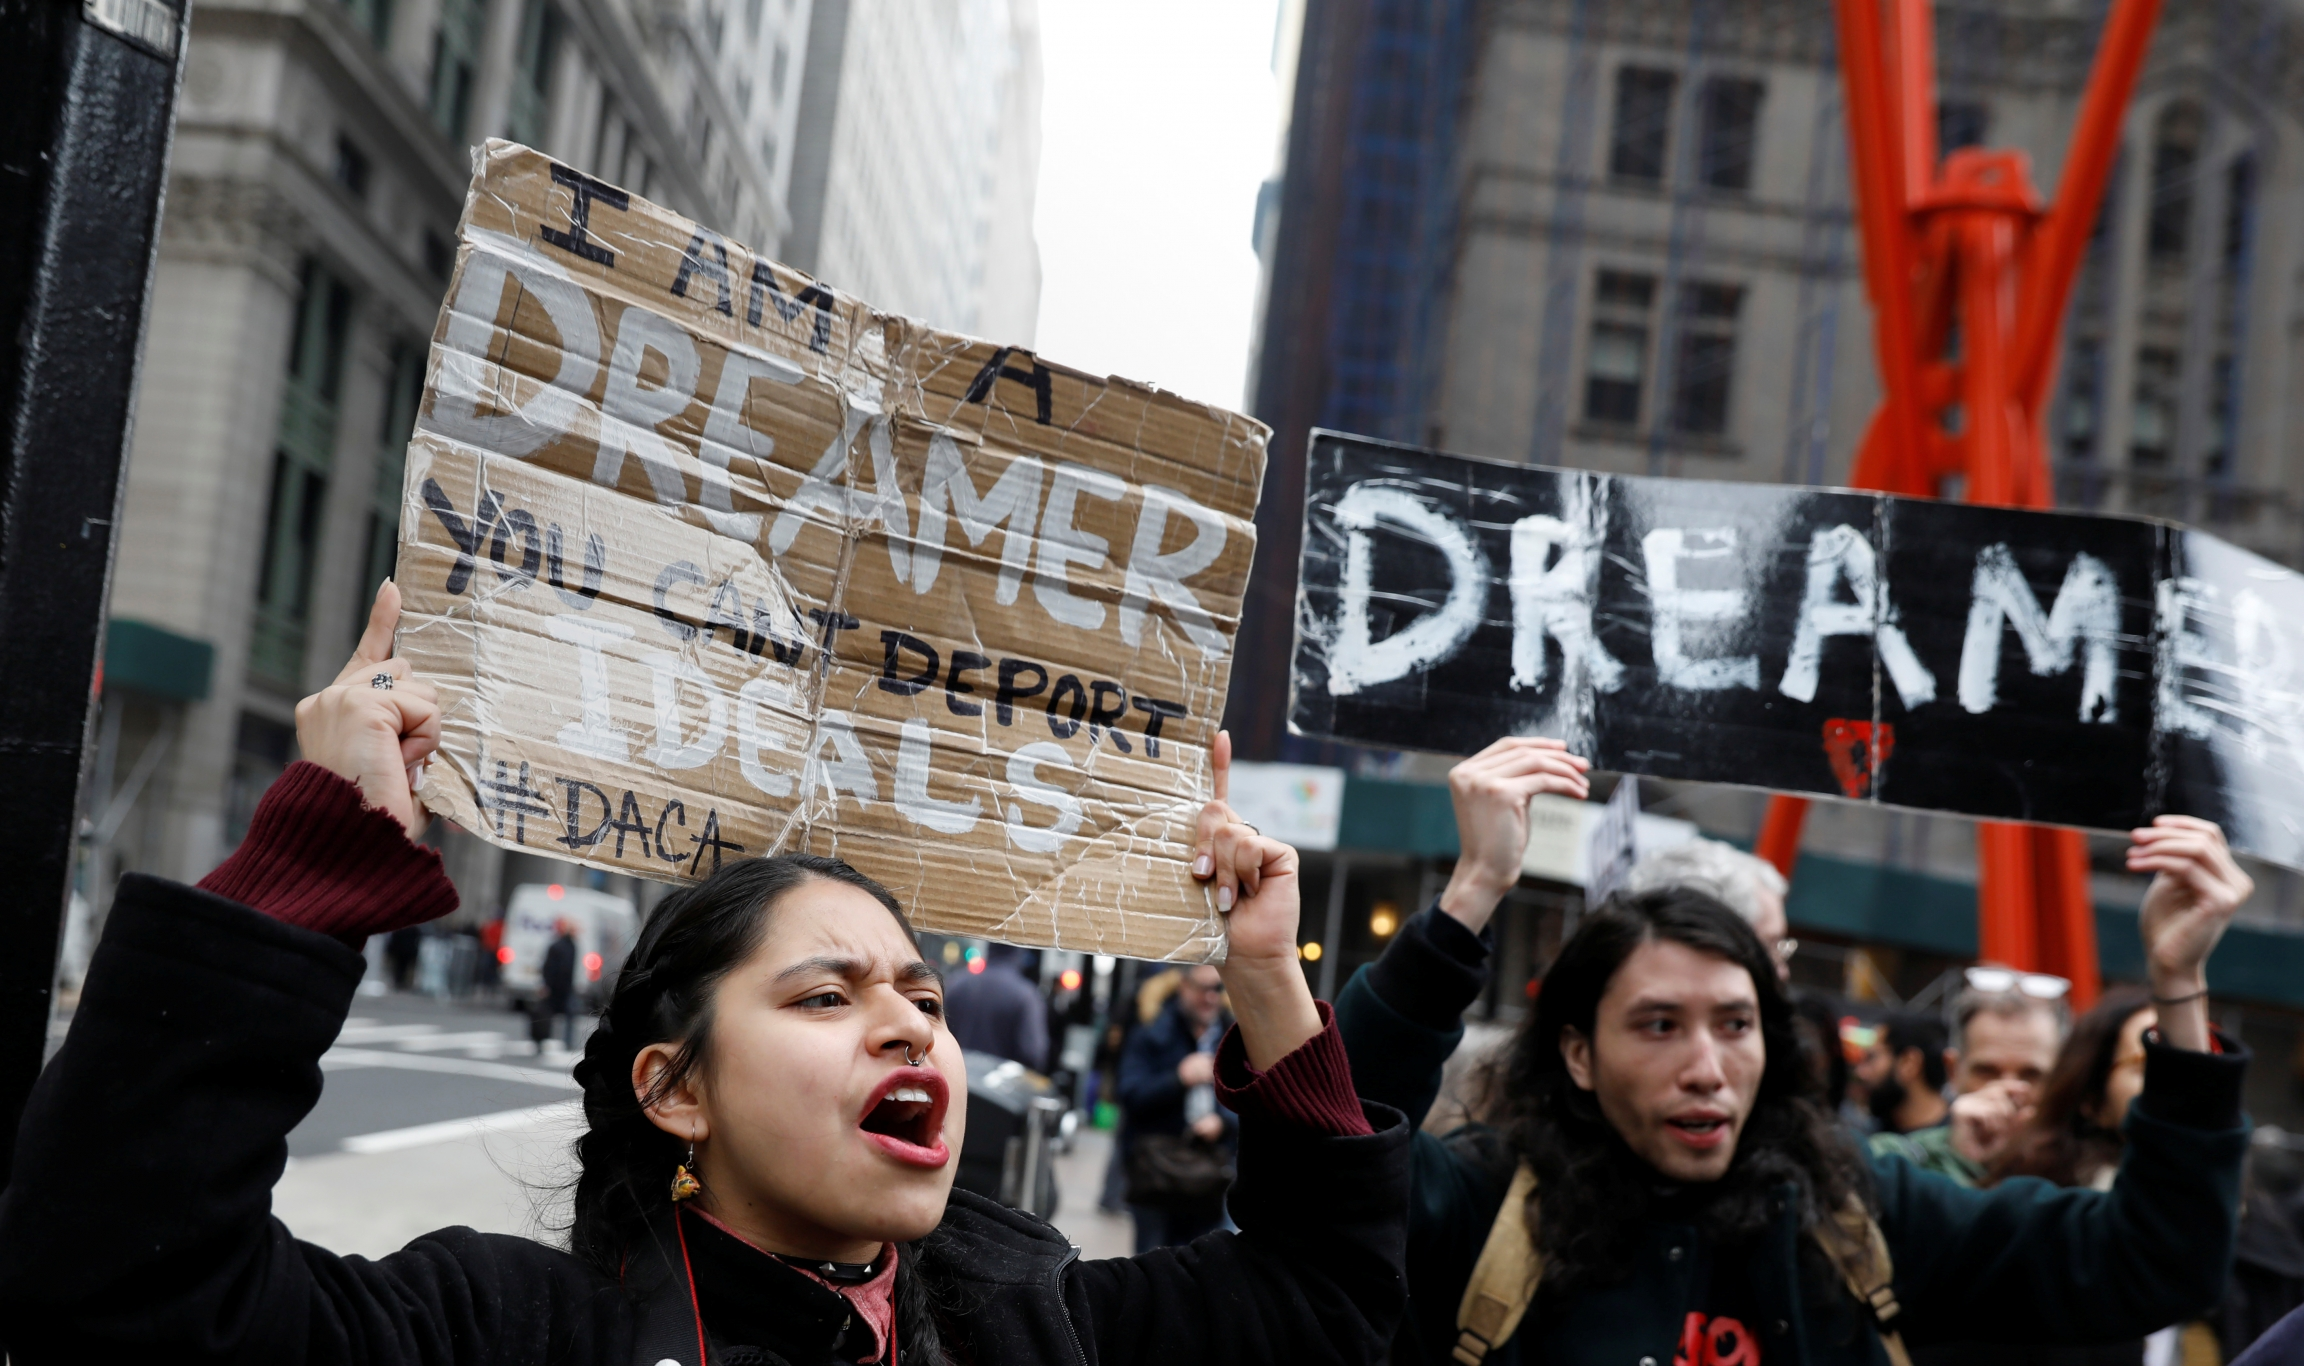 Activists and DACA recipients march up Broadway in New York holding signs.